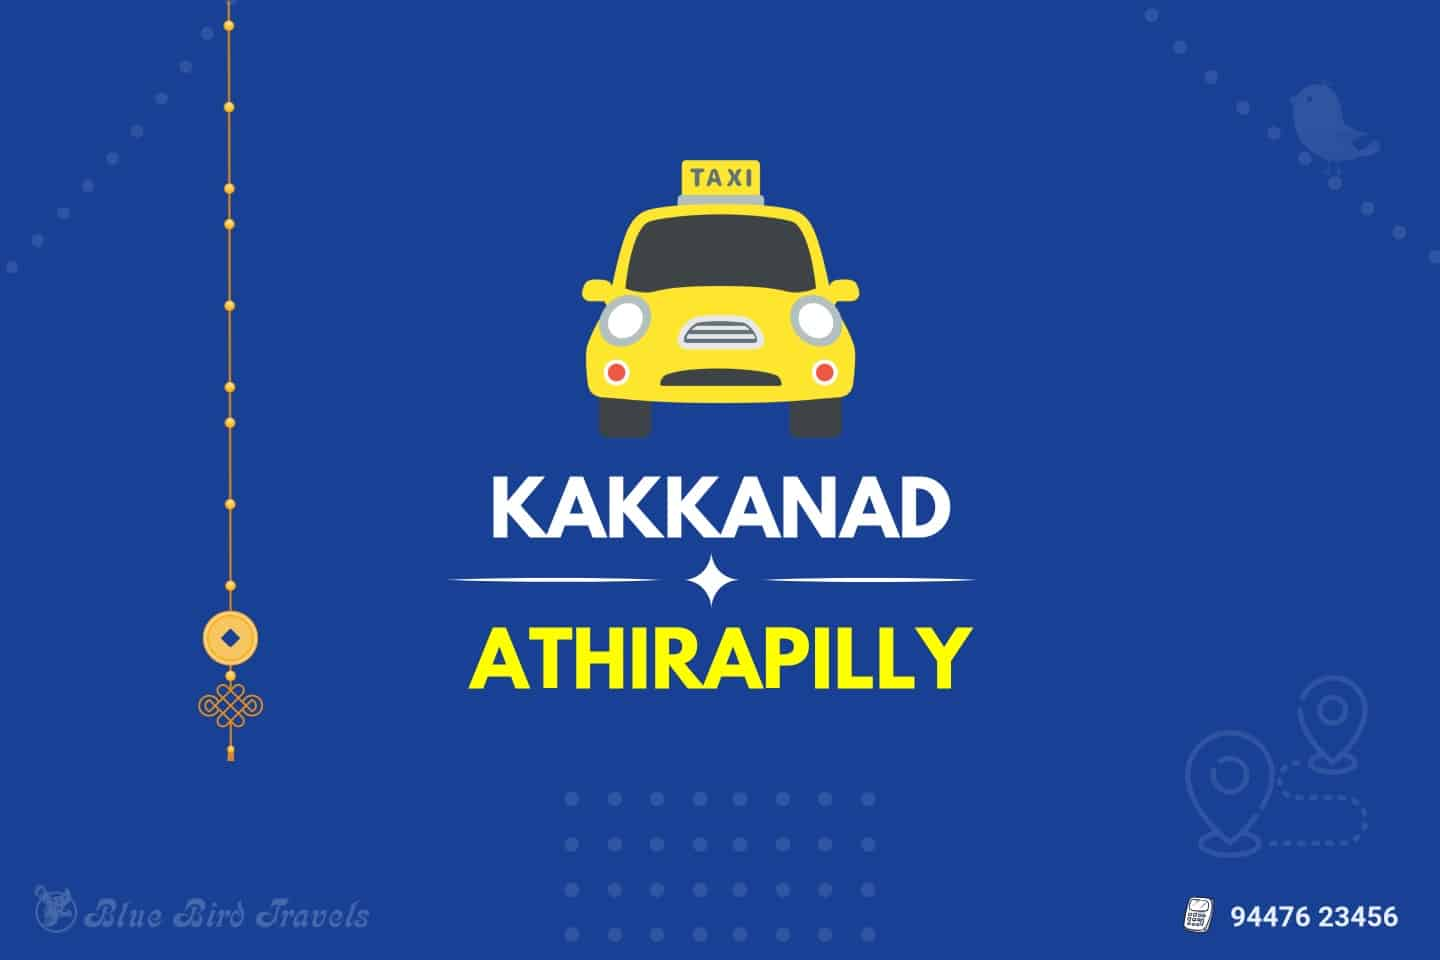 Kakkanad to Athirapilly Taxi (Featured Image)